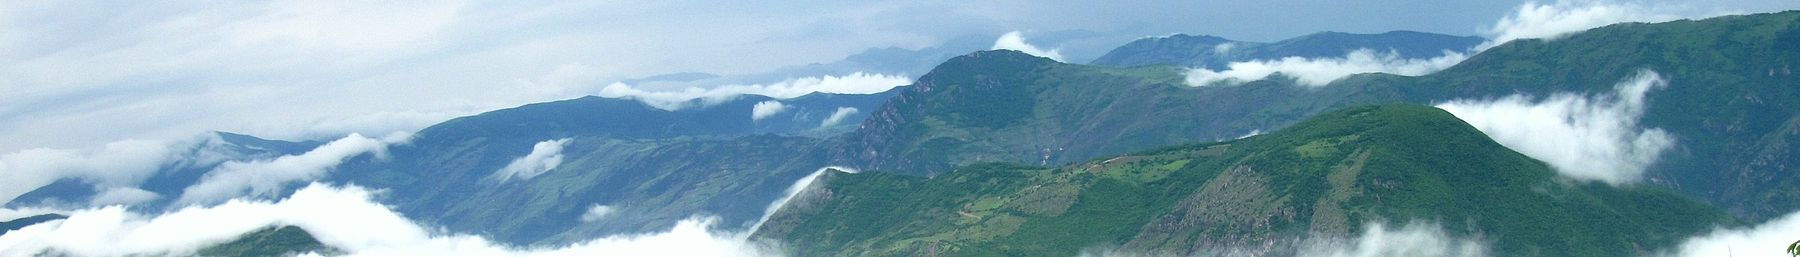 The misty mountains of Arasbārān